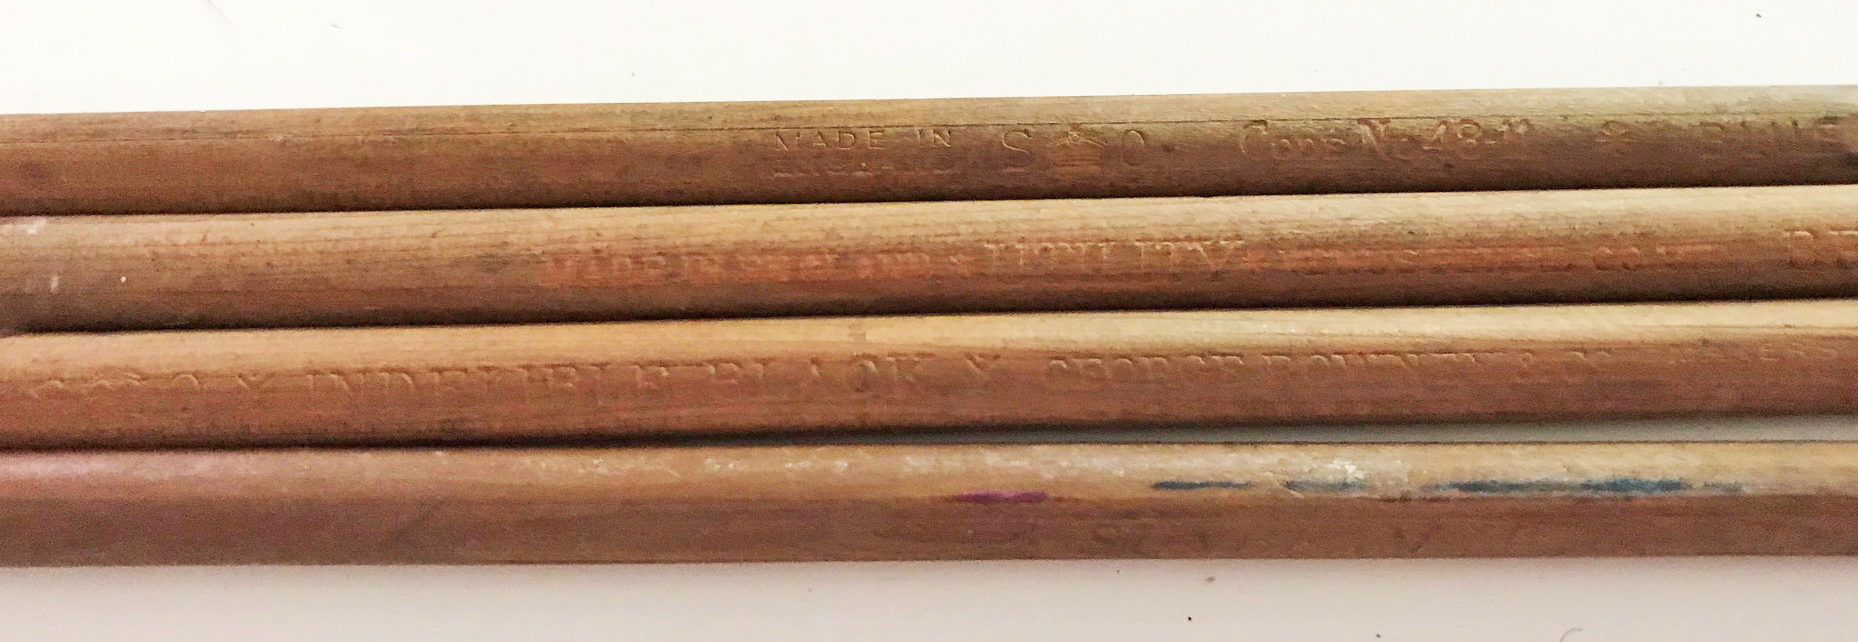 RAF navigator's chart marking pencils set of 4